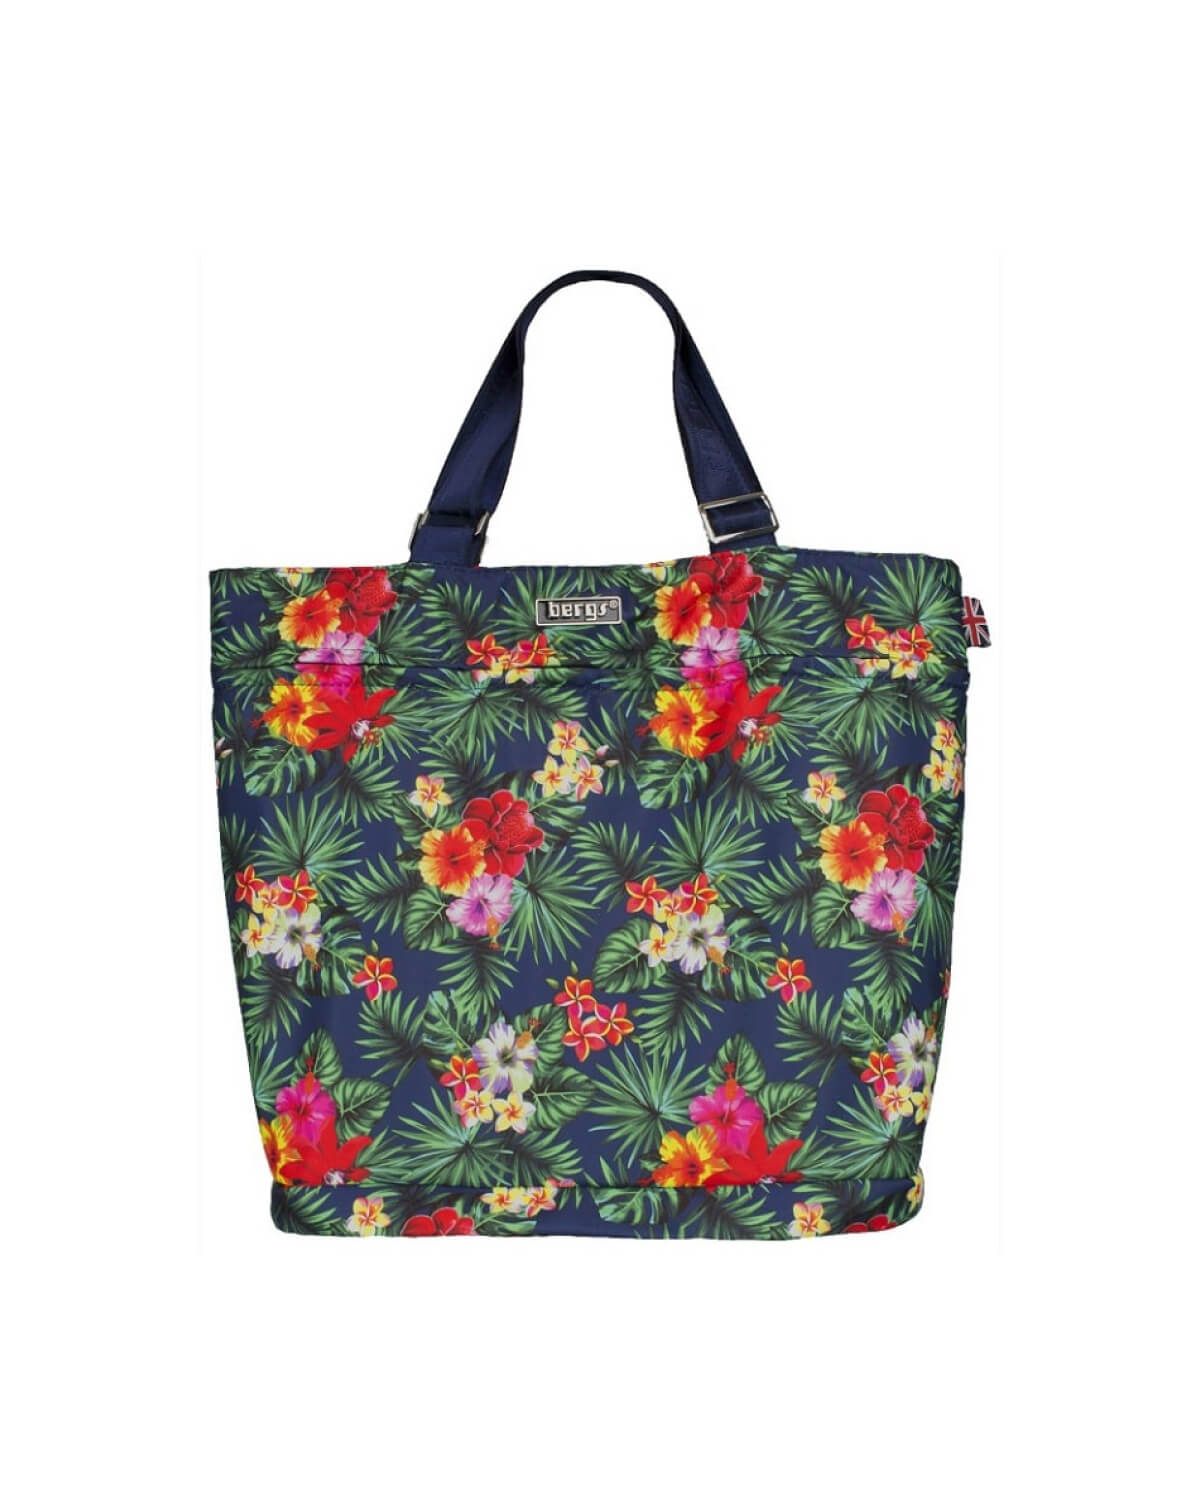 Bergs3in1 Multifunctional Bag Navy with Japanese Roses